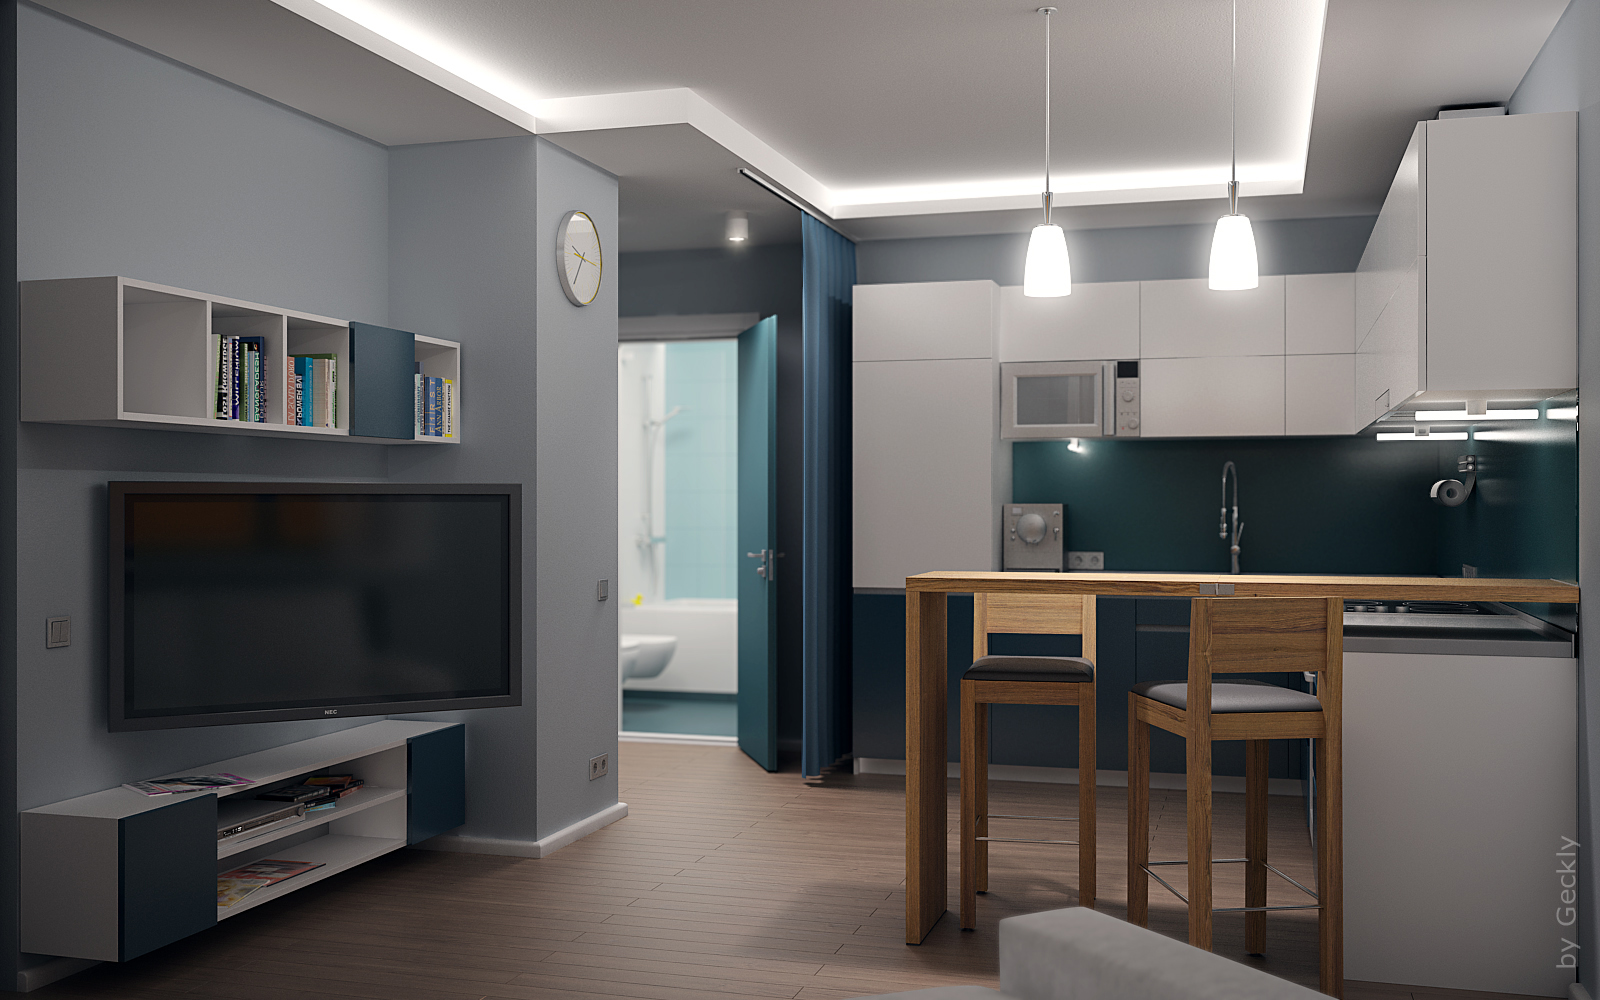 Small Kitchen Interior Images